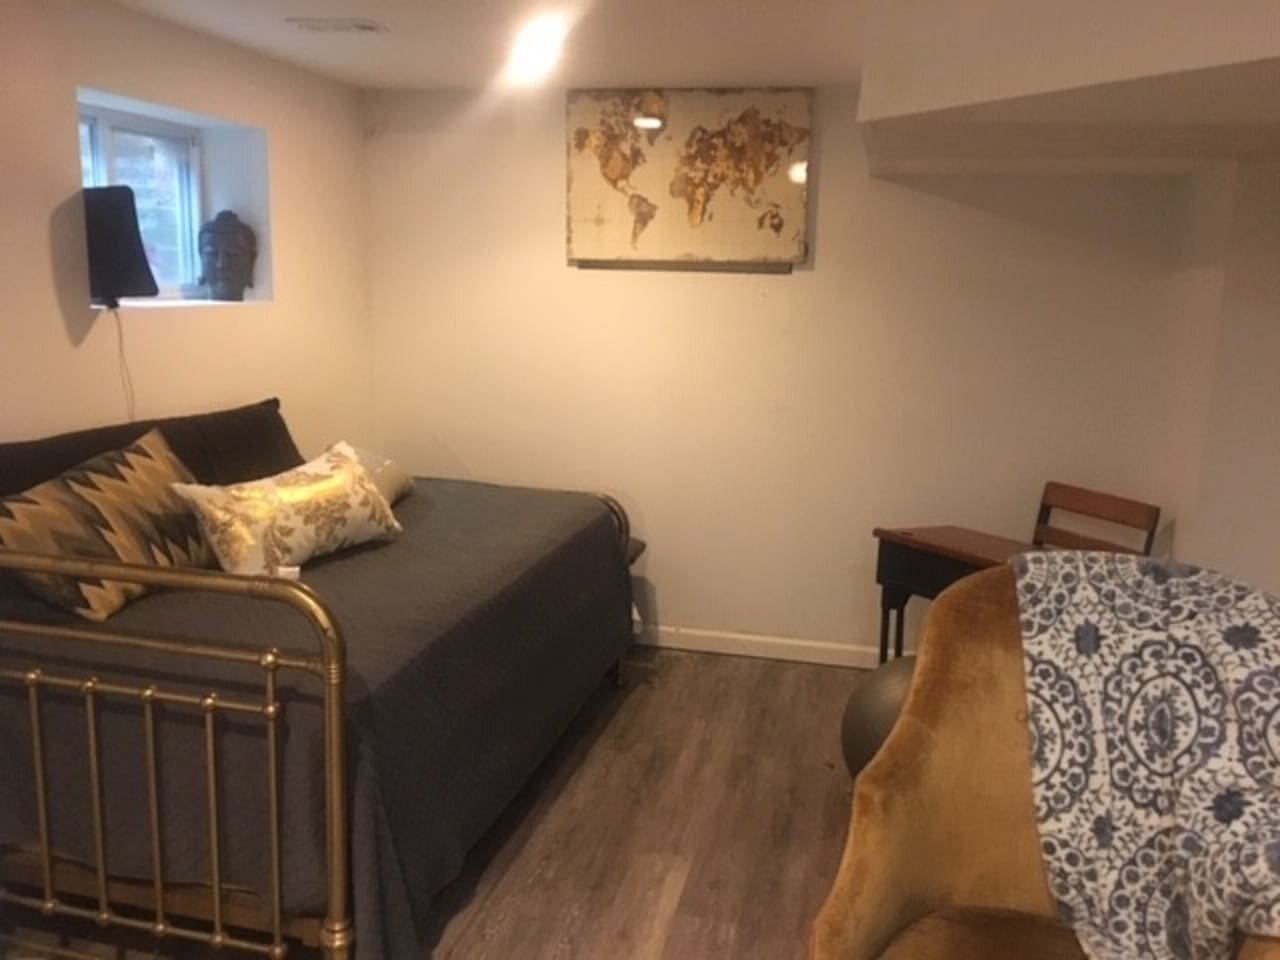 Comfy elongated twin bed in lower level alcove adjacent to full comfy couch